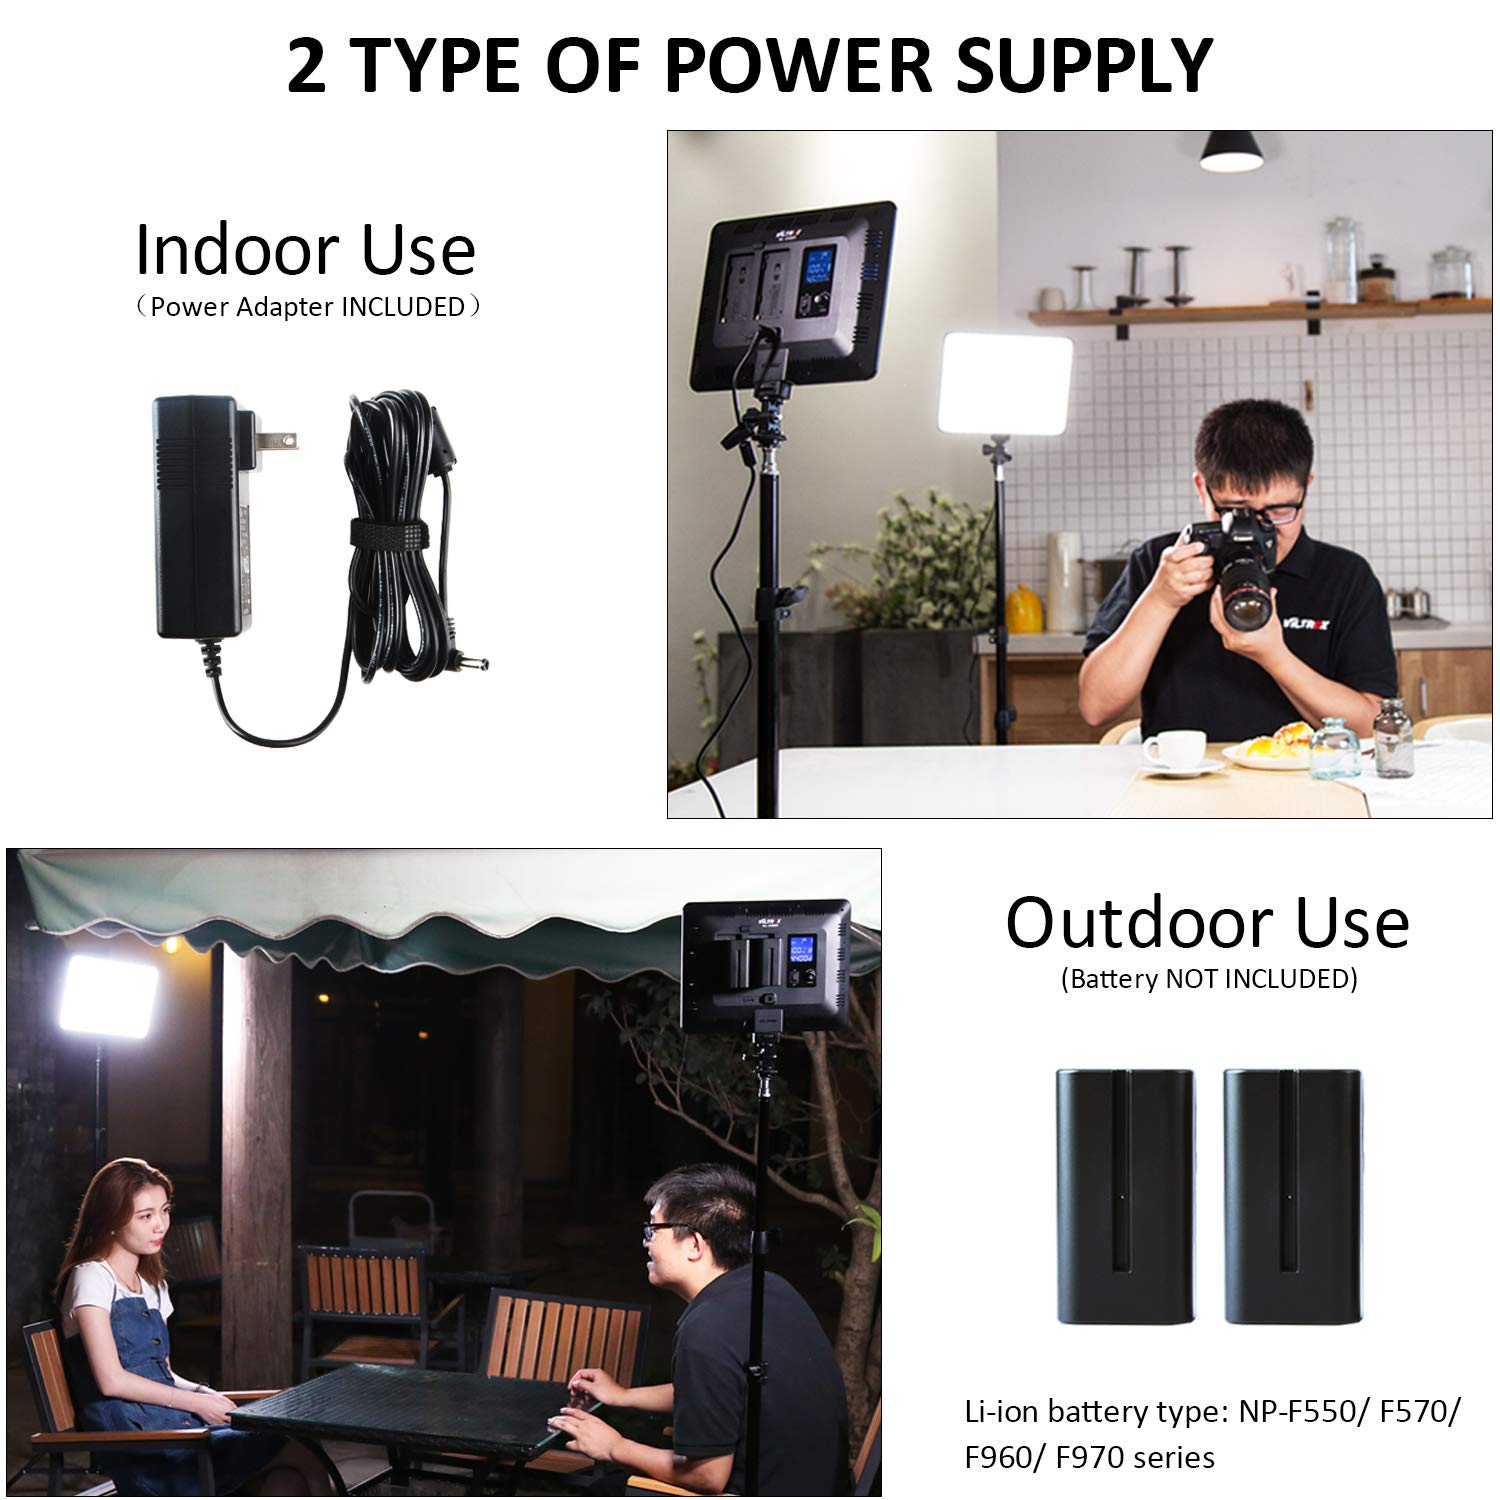 VILTROX 2-Pack VL-200 3300K-5600K CRI95 Super Slim LED Video Light Panel Photography Lighting Kit with Light Stand, Hot Shoe Adapter, Remote Controller, AC Adapter for YouTube Studio Video Shooting by VILTROX (Image #4)